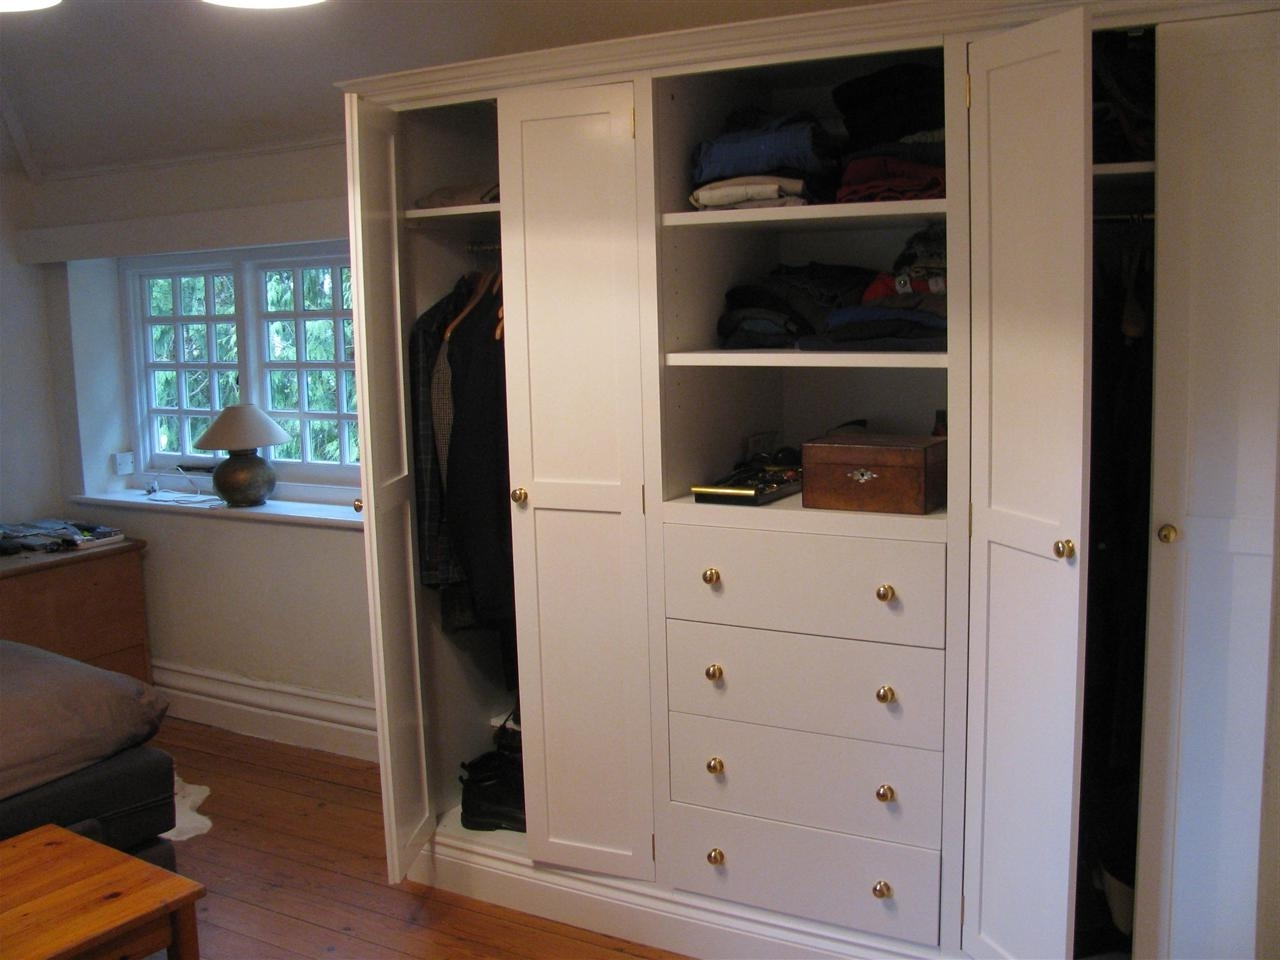 2018 Wardrobe Cabinet With Shelves Drawers And One Door Single With Regard To Wardrobe With Shelves And Drawers (View 3 of 15)